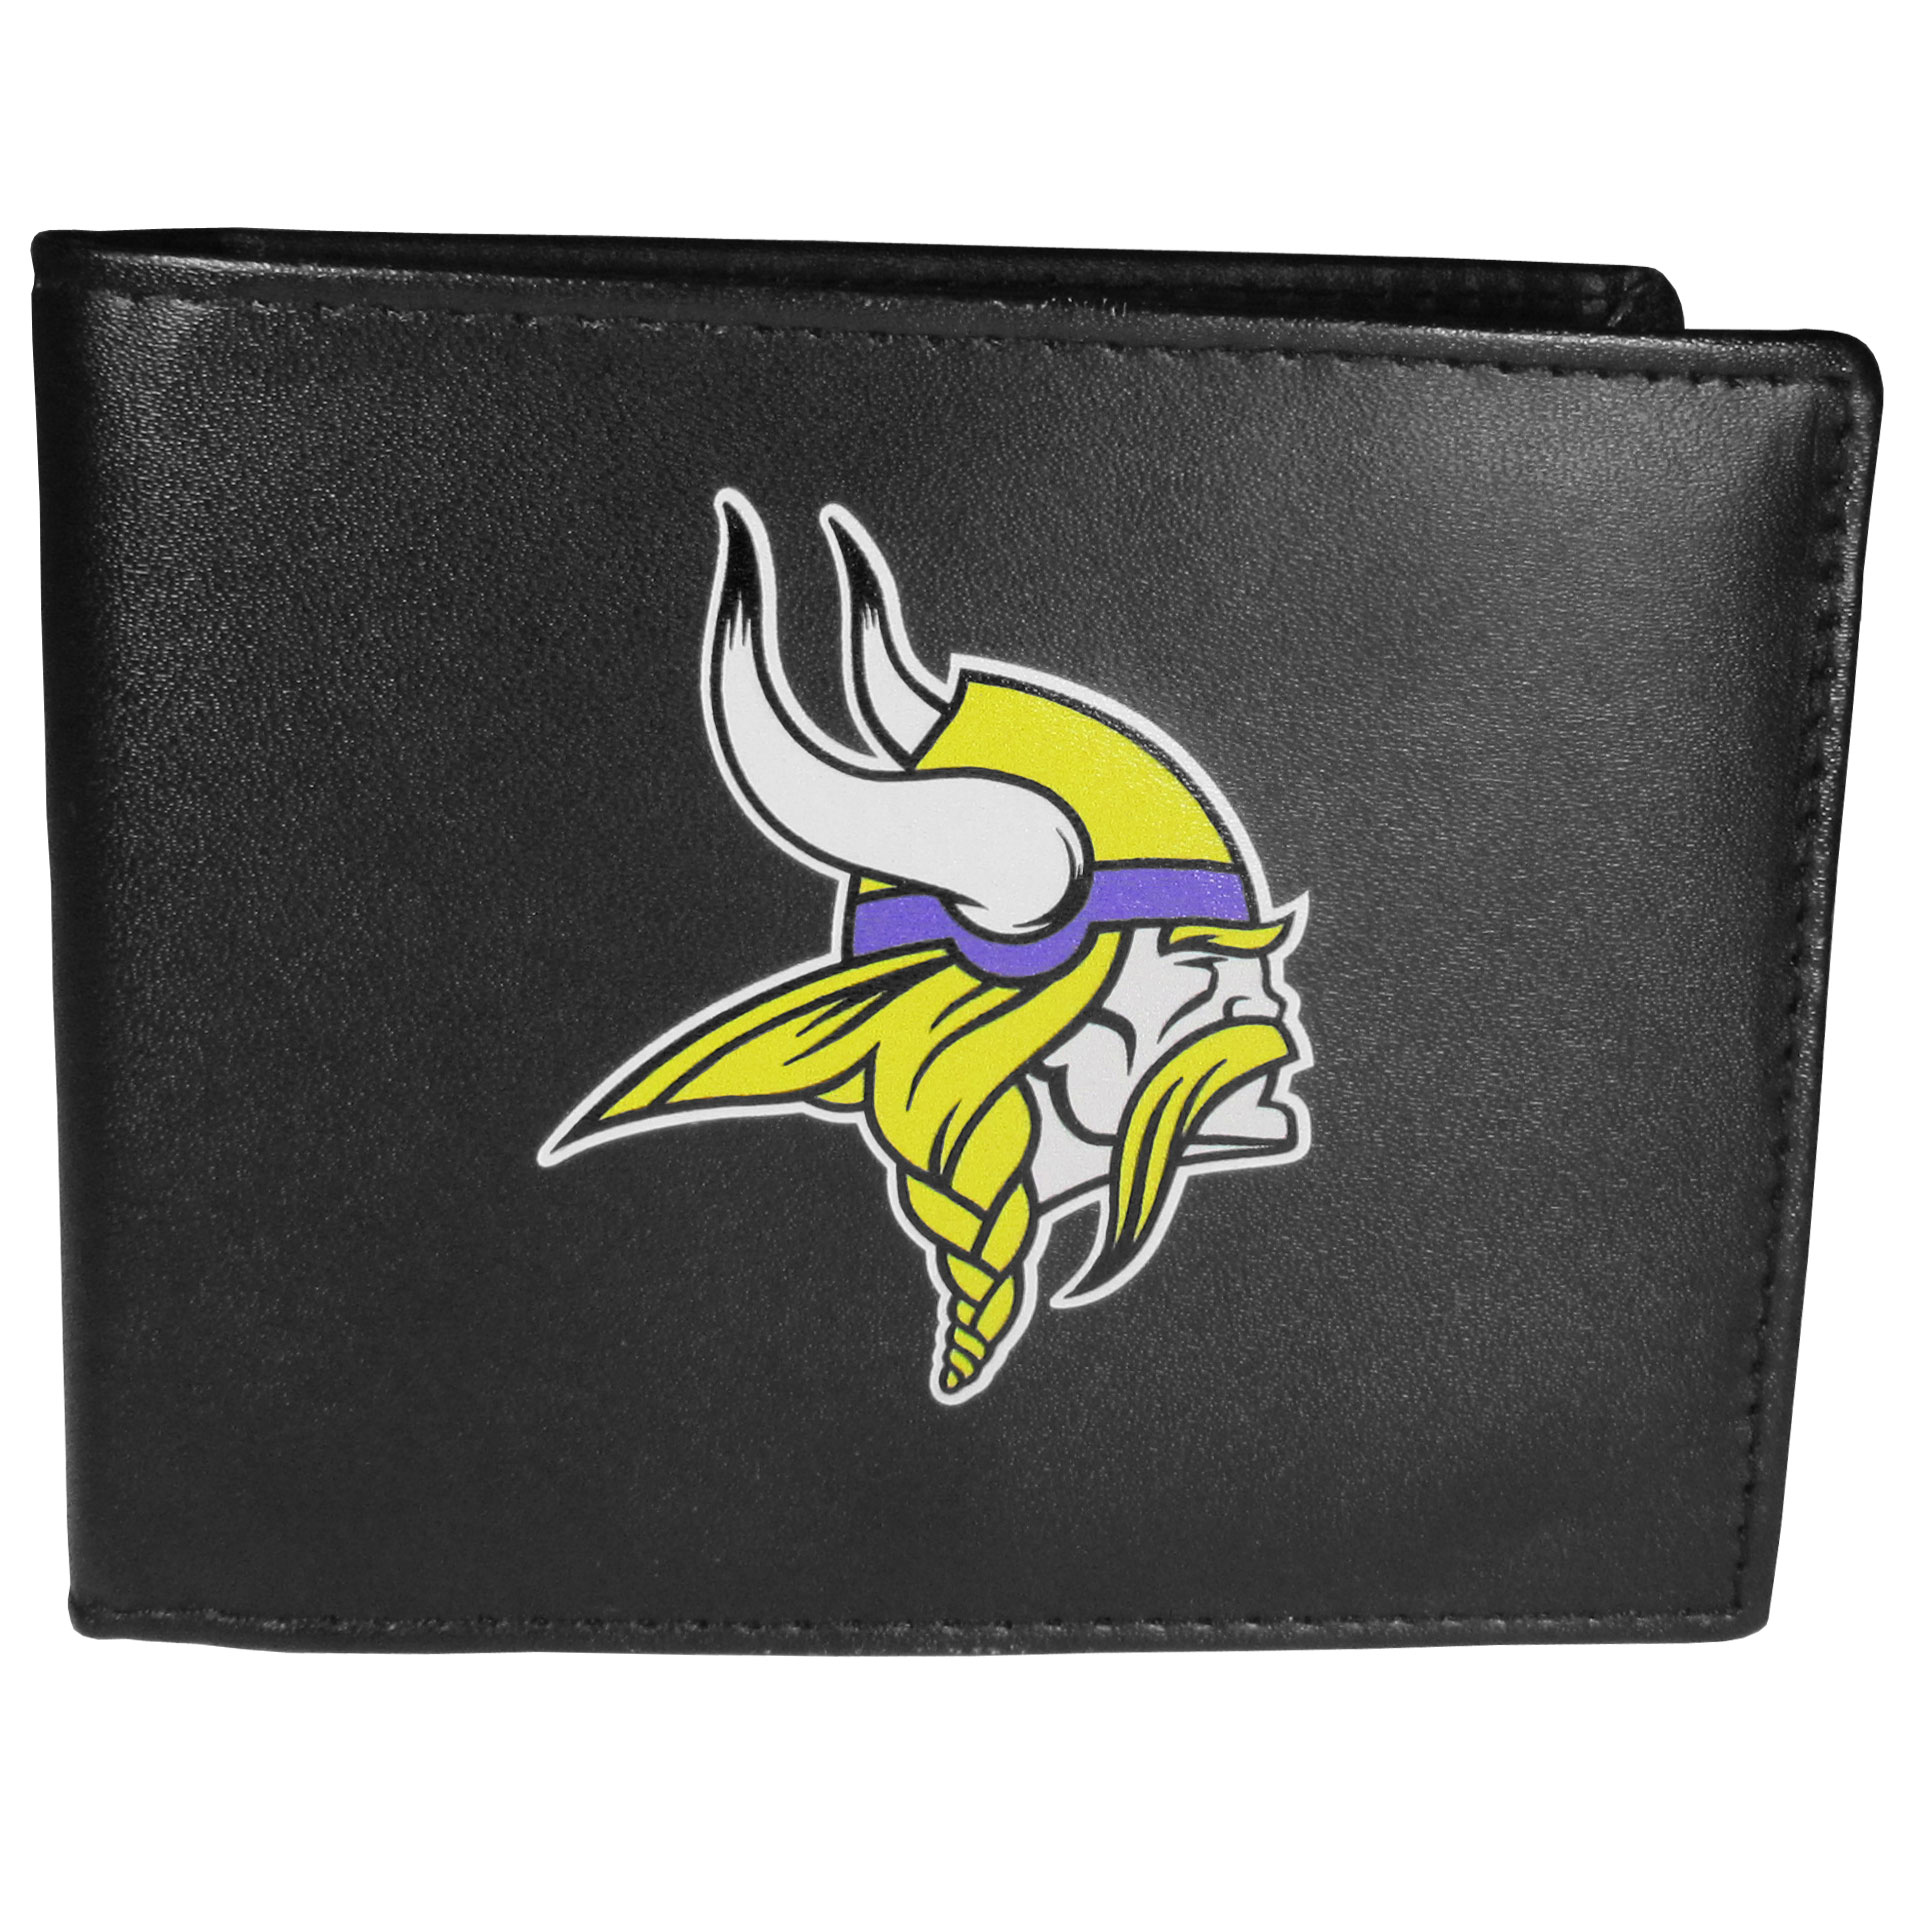 Minnesota Vikings Bi-fold Wallet Large Logo - Sports fans do not have to sacrifice style with this classic bi-fold wallet that sports the Minnesota Vikings extra large logo. This men's fashion accessory has a leather grain look and expert craftmanship for a quality wallet at a great price. The wallet features inner credit card slots, windowed ID slot and a large billfold pocket. The front of the wallet features a printed team logo.